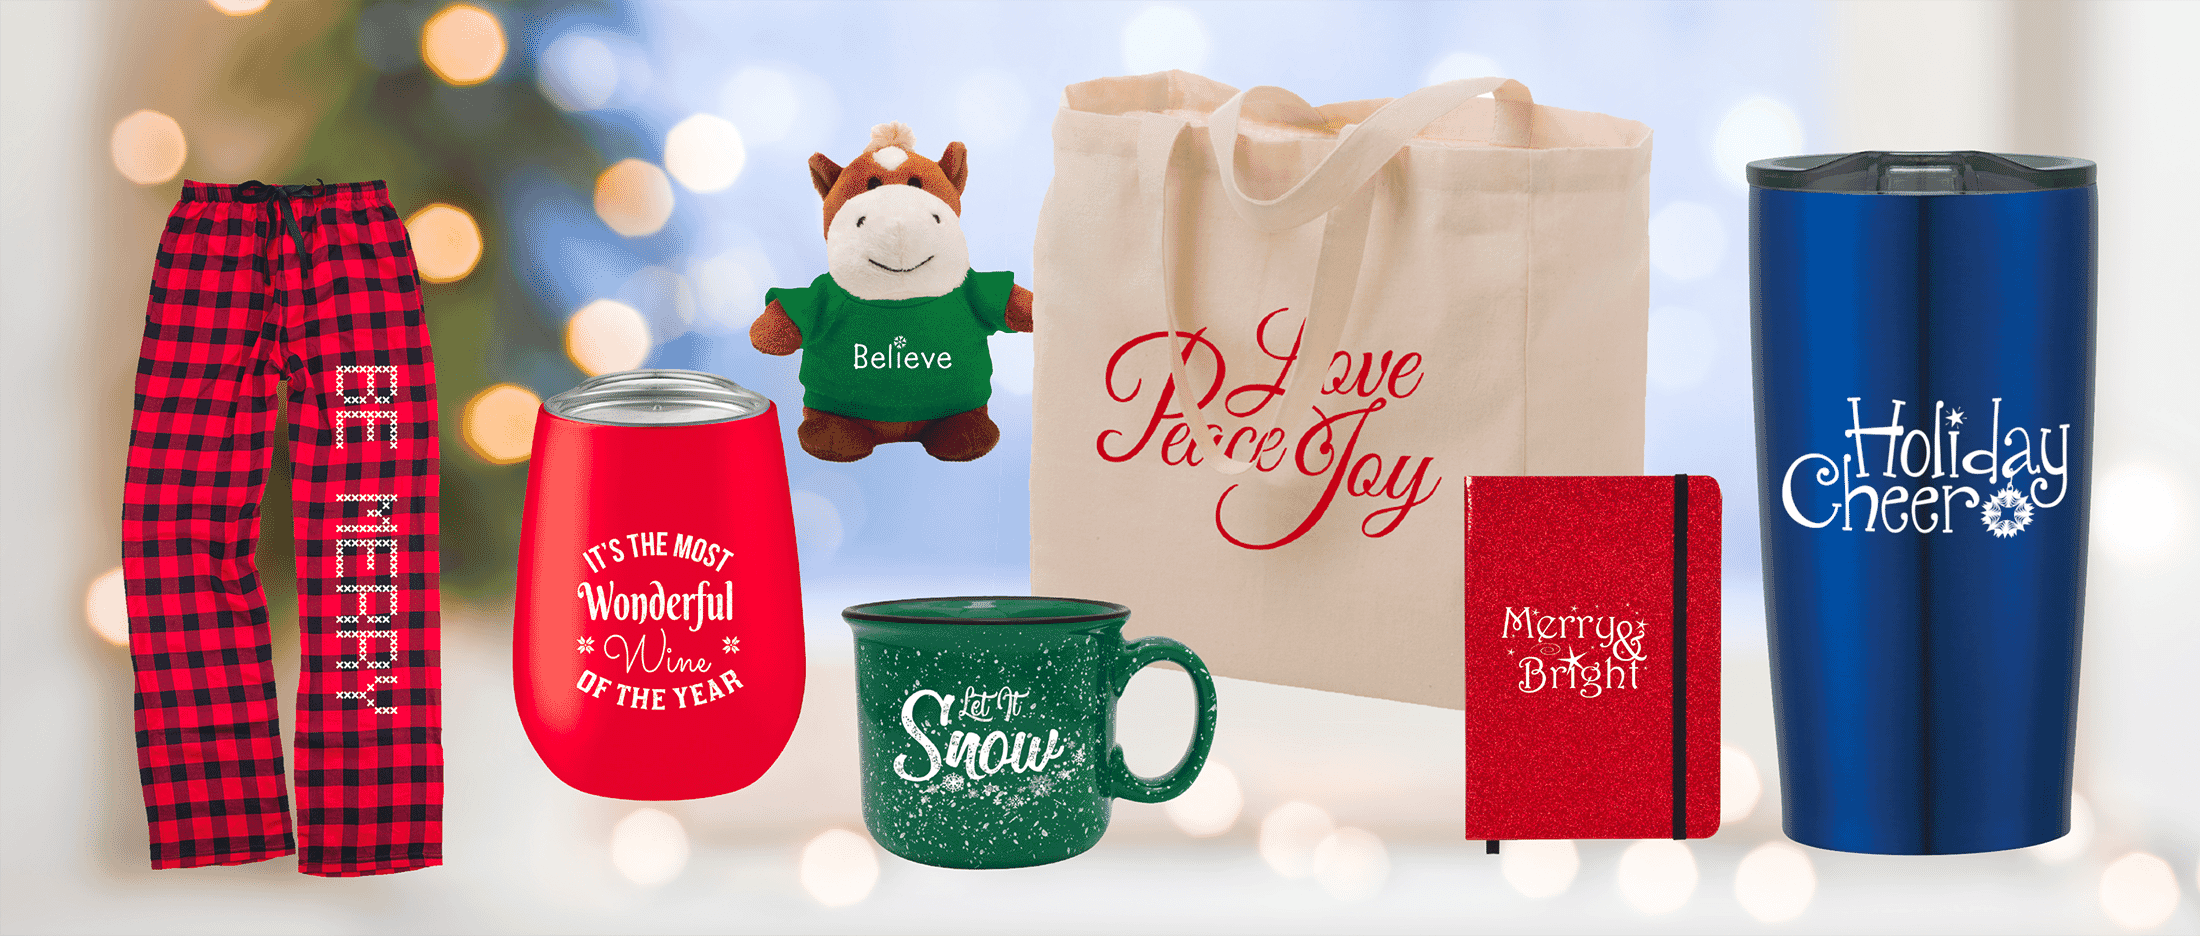 Holiday designs on promotional product gifts